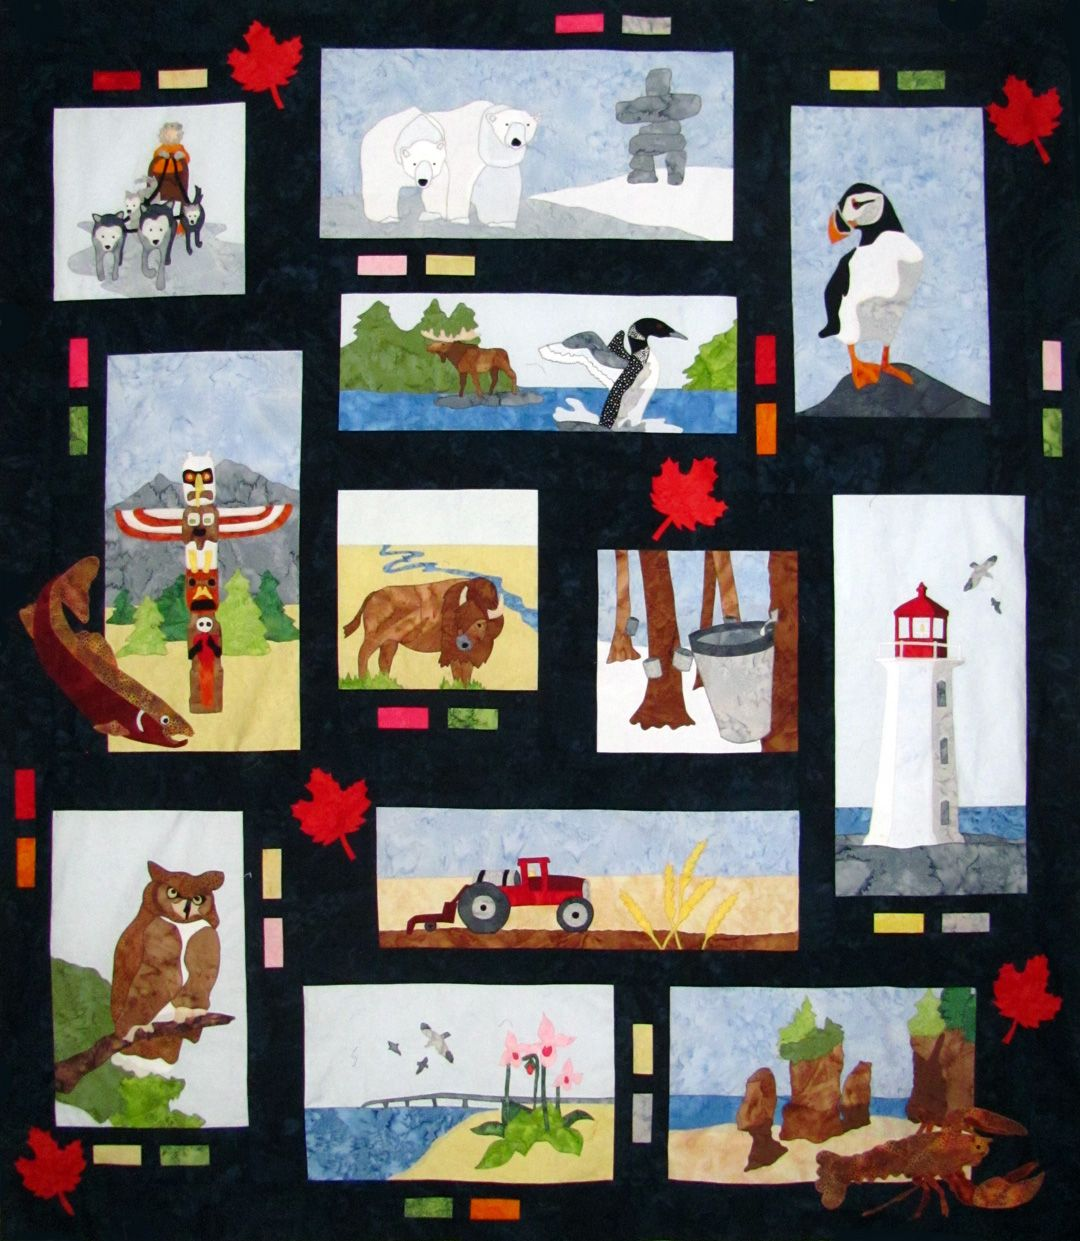 Canada 150 Small Home Designs: This Is Canada A Quilt To Commemorate Canada's 150th In